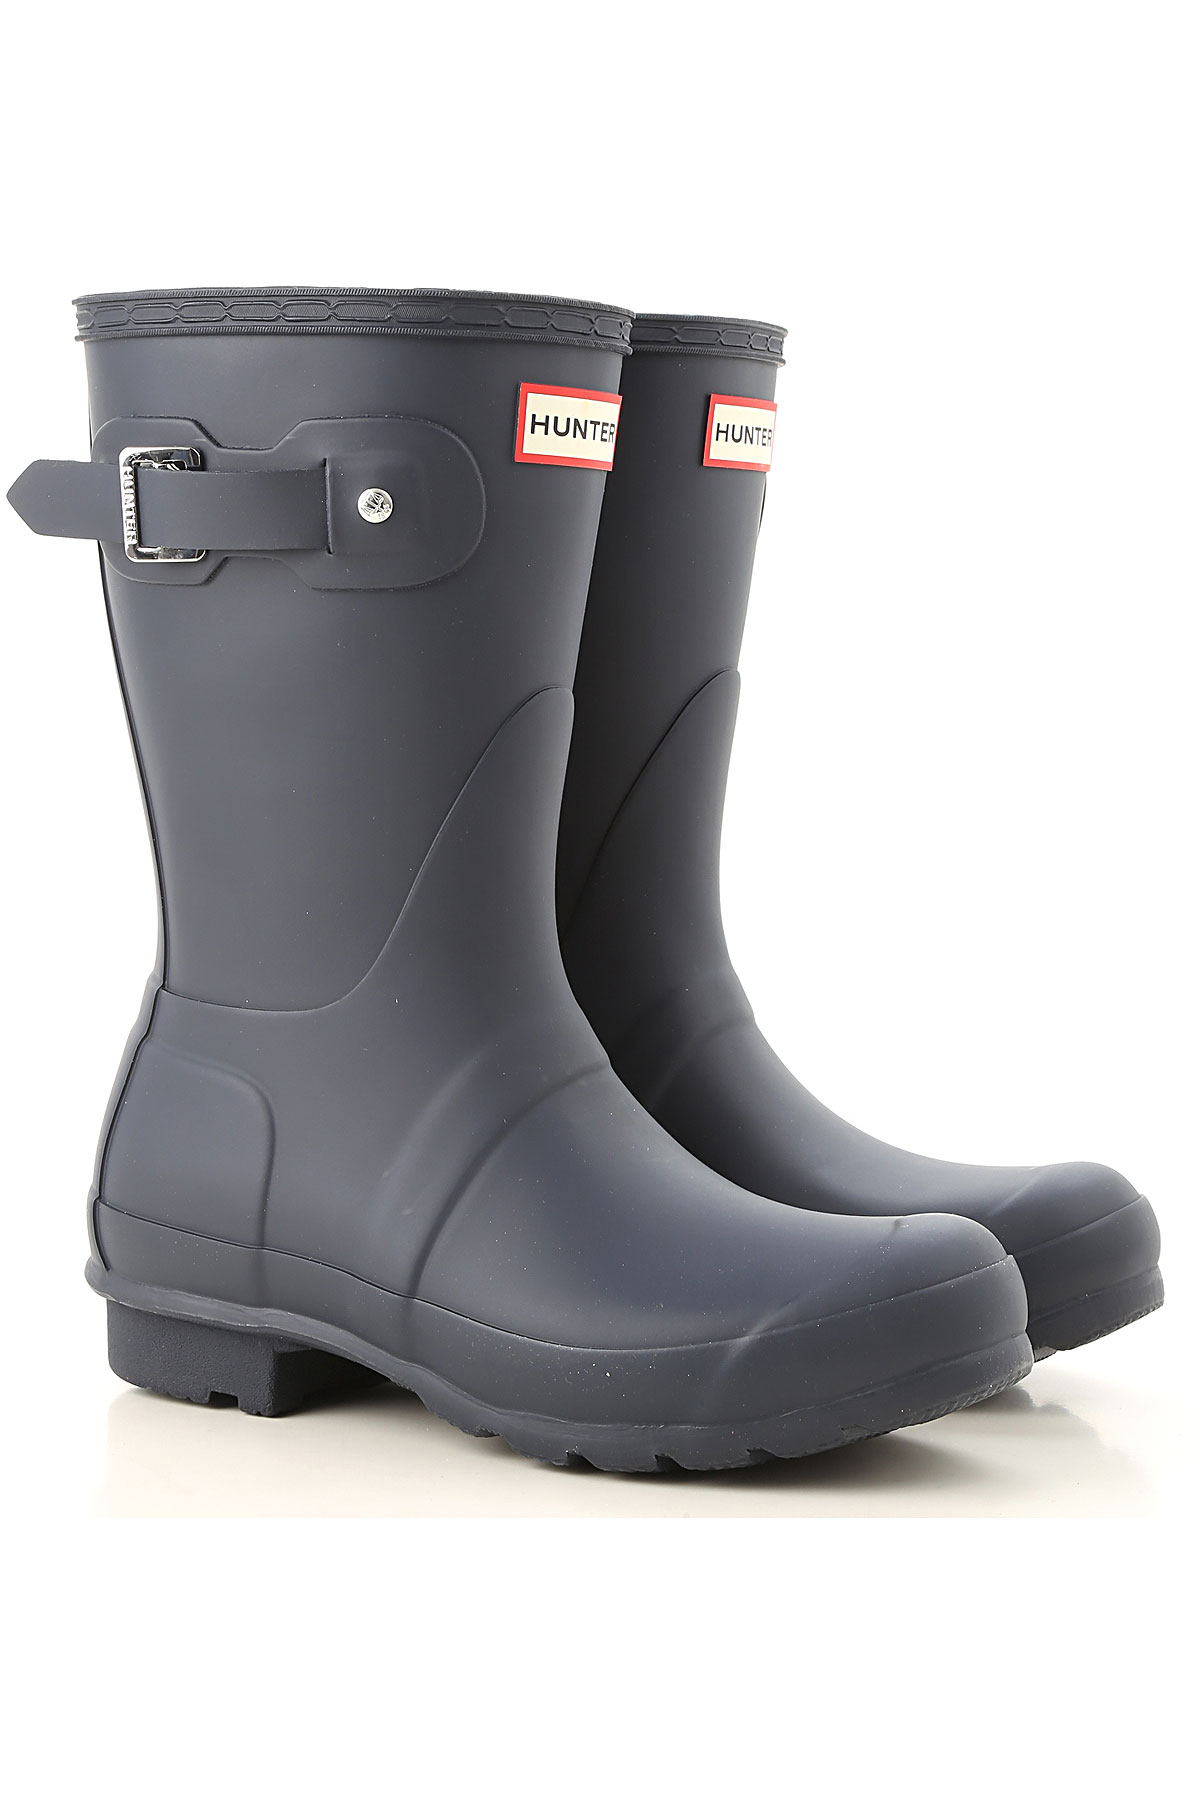 Image of Hunter Boots for Women, Booties, navy, Rubber, 2017, 6 7 8 9